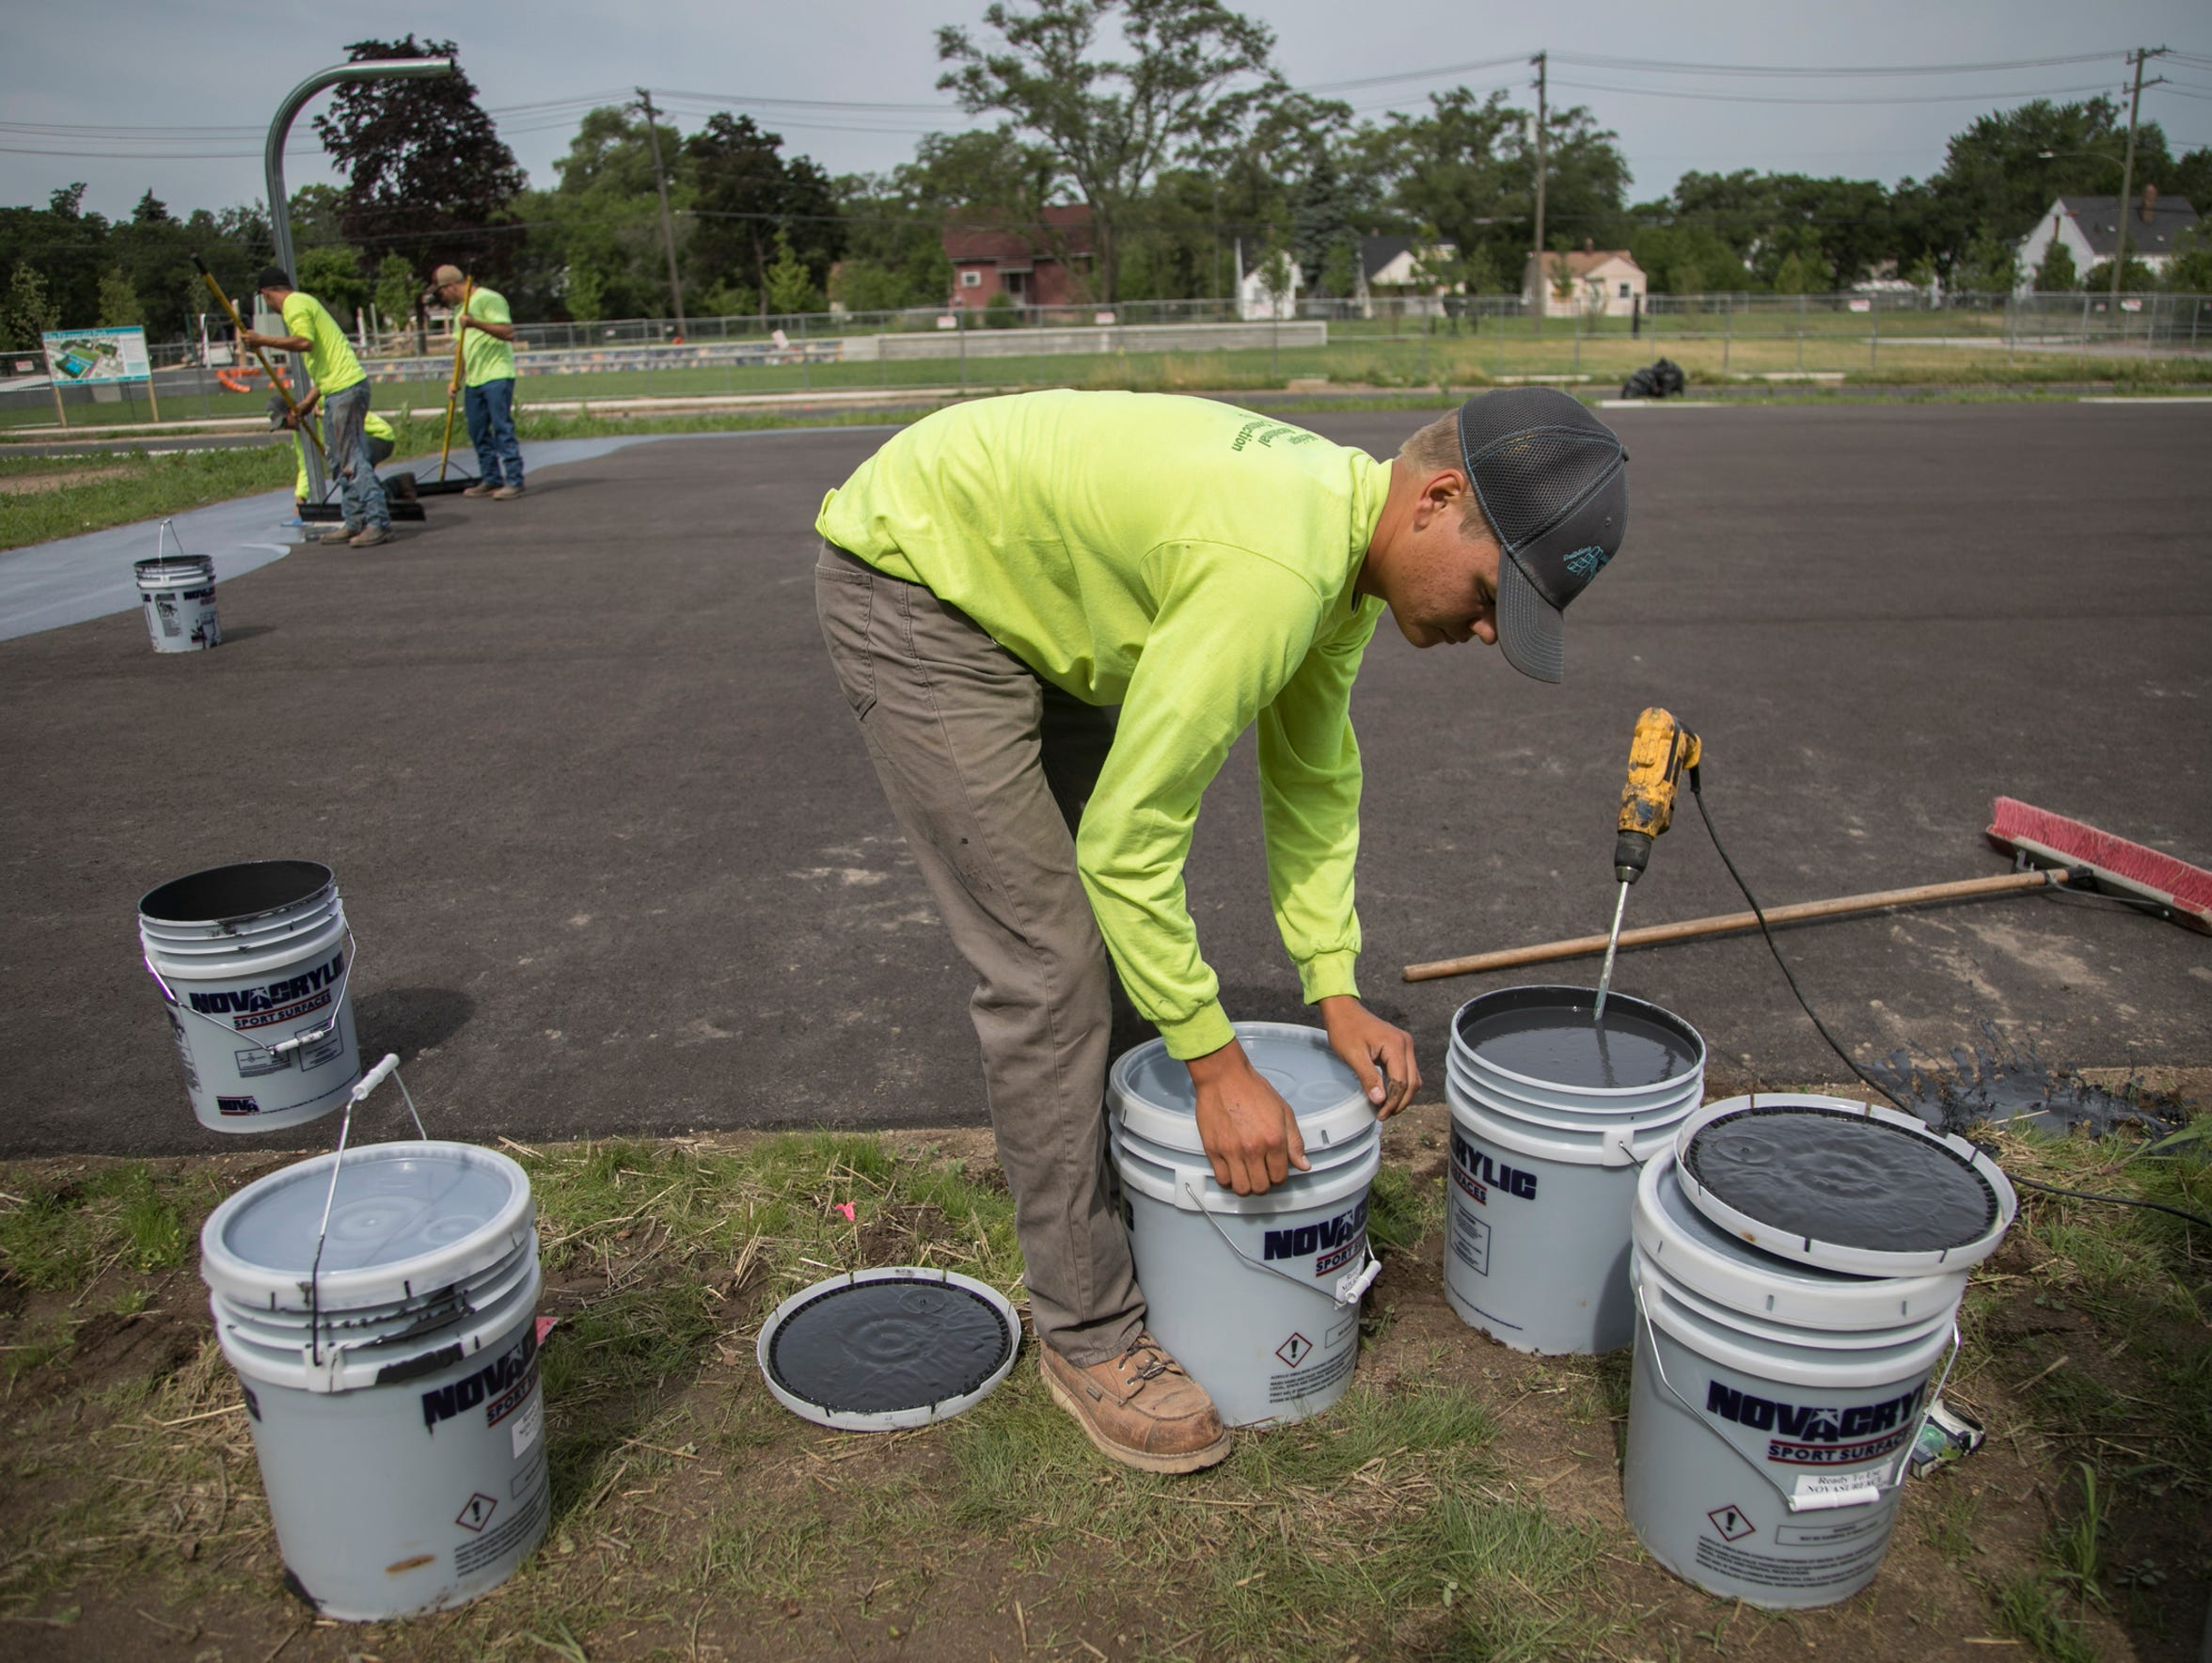 Michigan Recreational Construction employee Tye Pennala, 19, of Howell, prepares paint for a new basketball court in the Fitzgerald neighborhood on June 25 in Detroit.